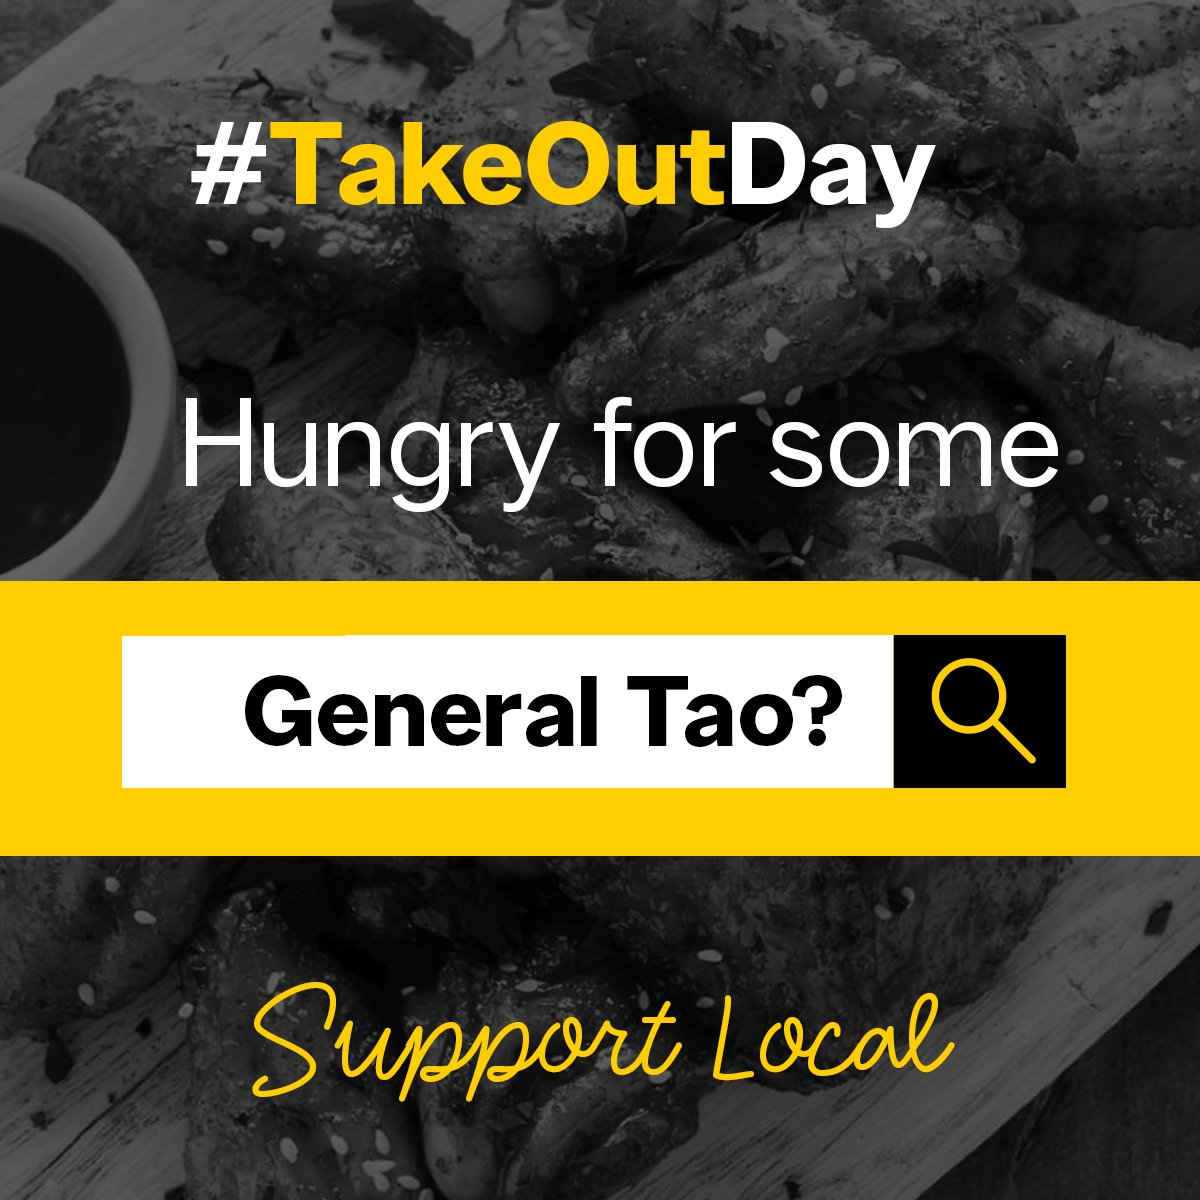 Have a craving for General Tao Chicken? Why not support your local Asian restaurant and order in for #TakeOutDay  ----> https://t.co/dBLHVbOOlX https://t.co/vLEgmaXN0O